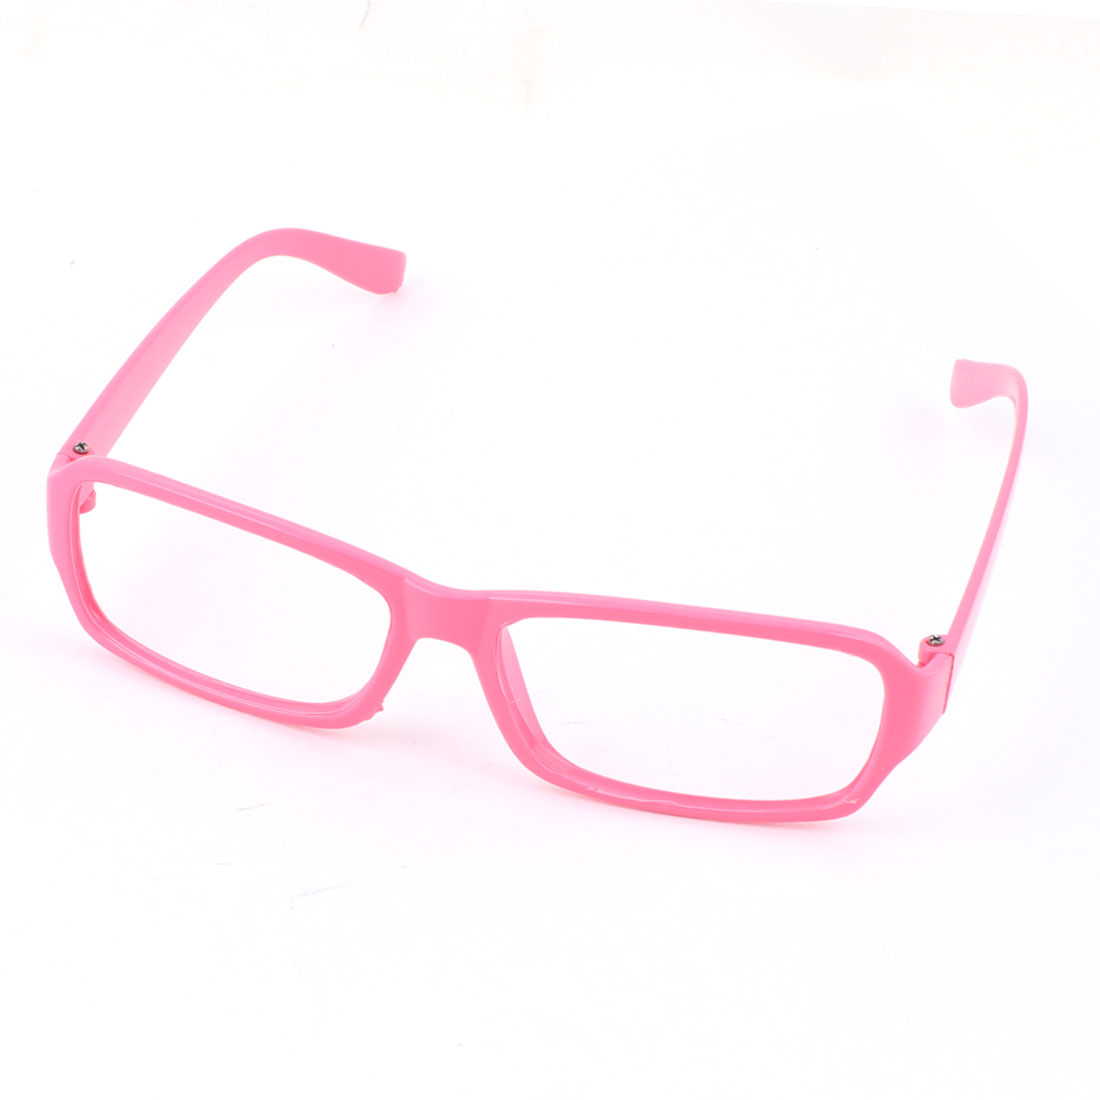 Ladies Pink Plastic Full Rimmed Eyeglasses Frame